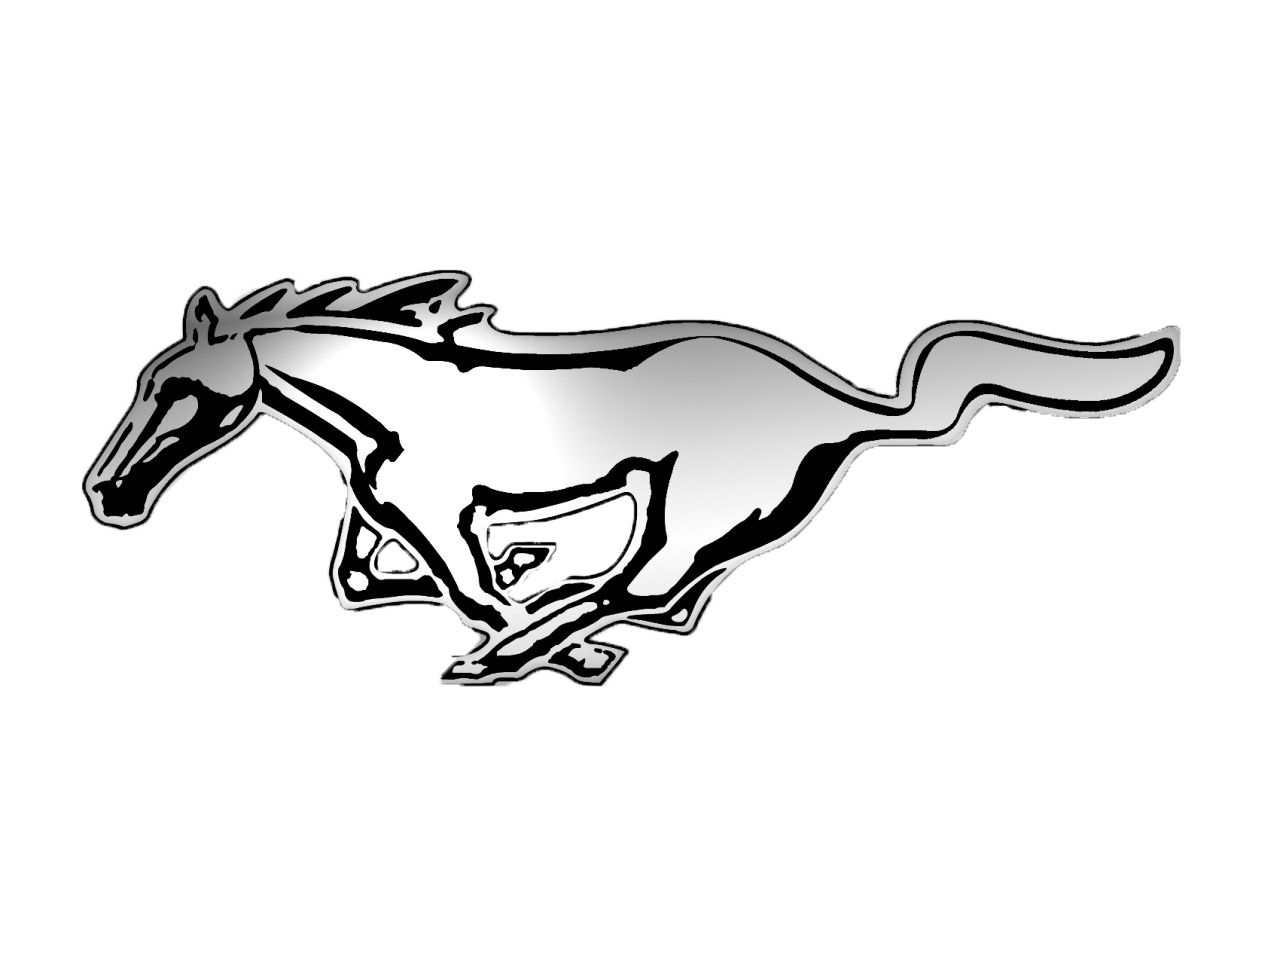 Ford mustang logo outline vehicle photos pinterest ford mustang and ford - Ford mustang logo outline ...